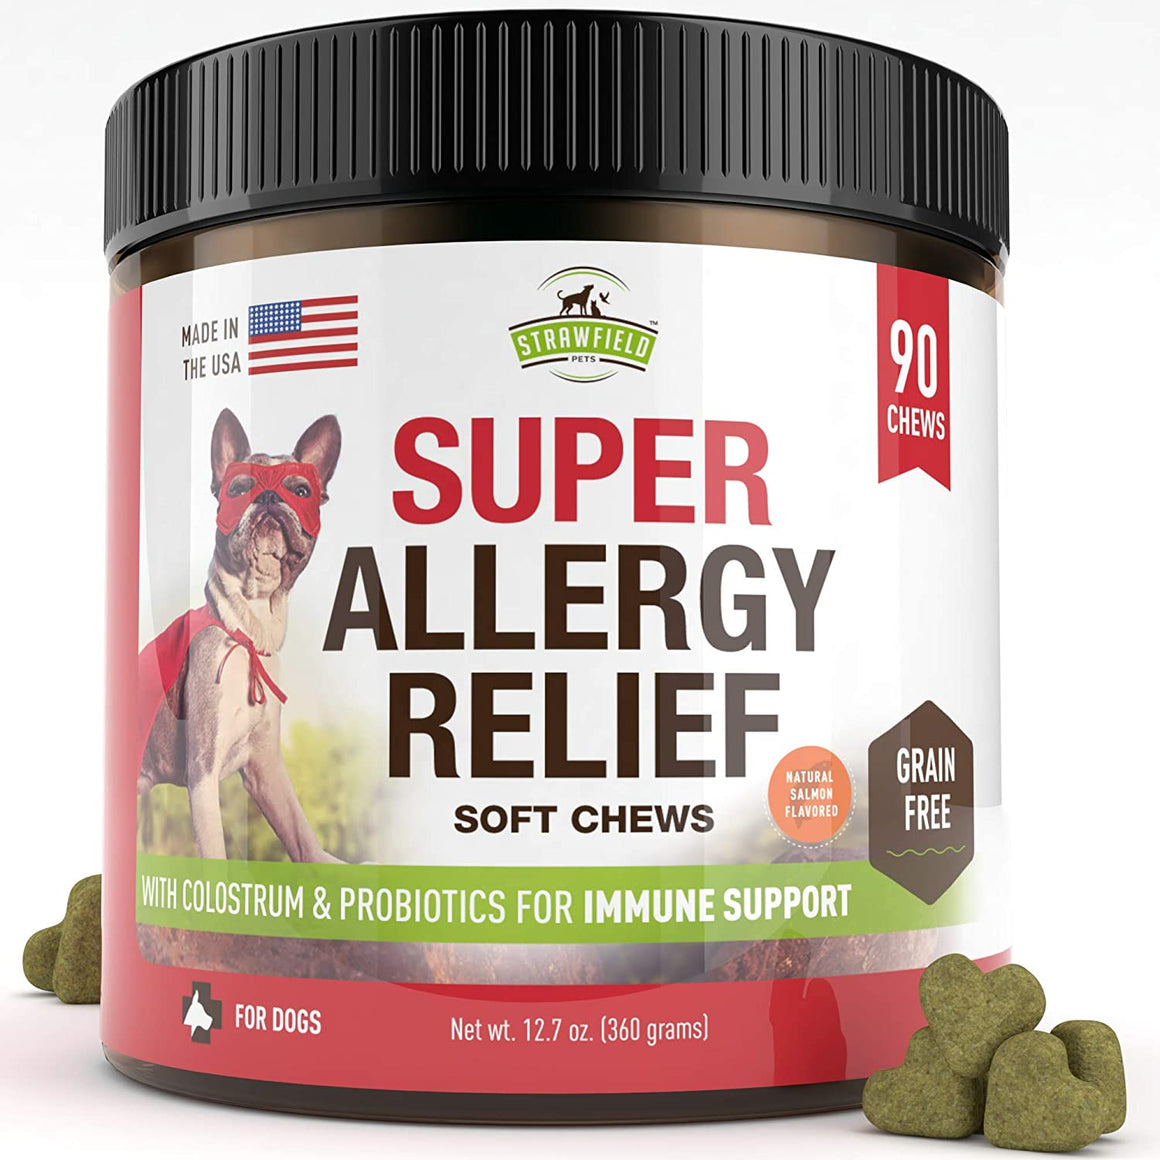 Super Allergy Relief Chews for Dogs with Colostrum & Probiotics - 90 count